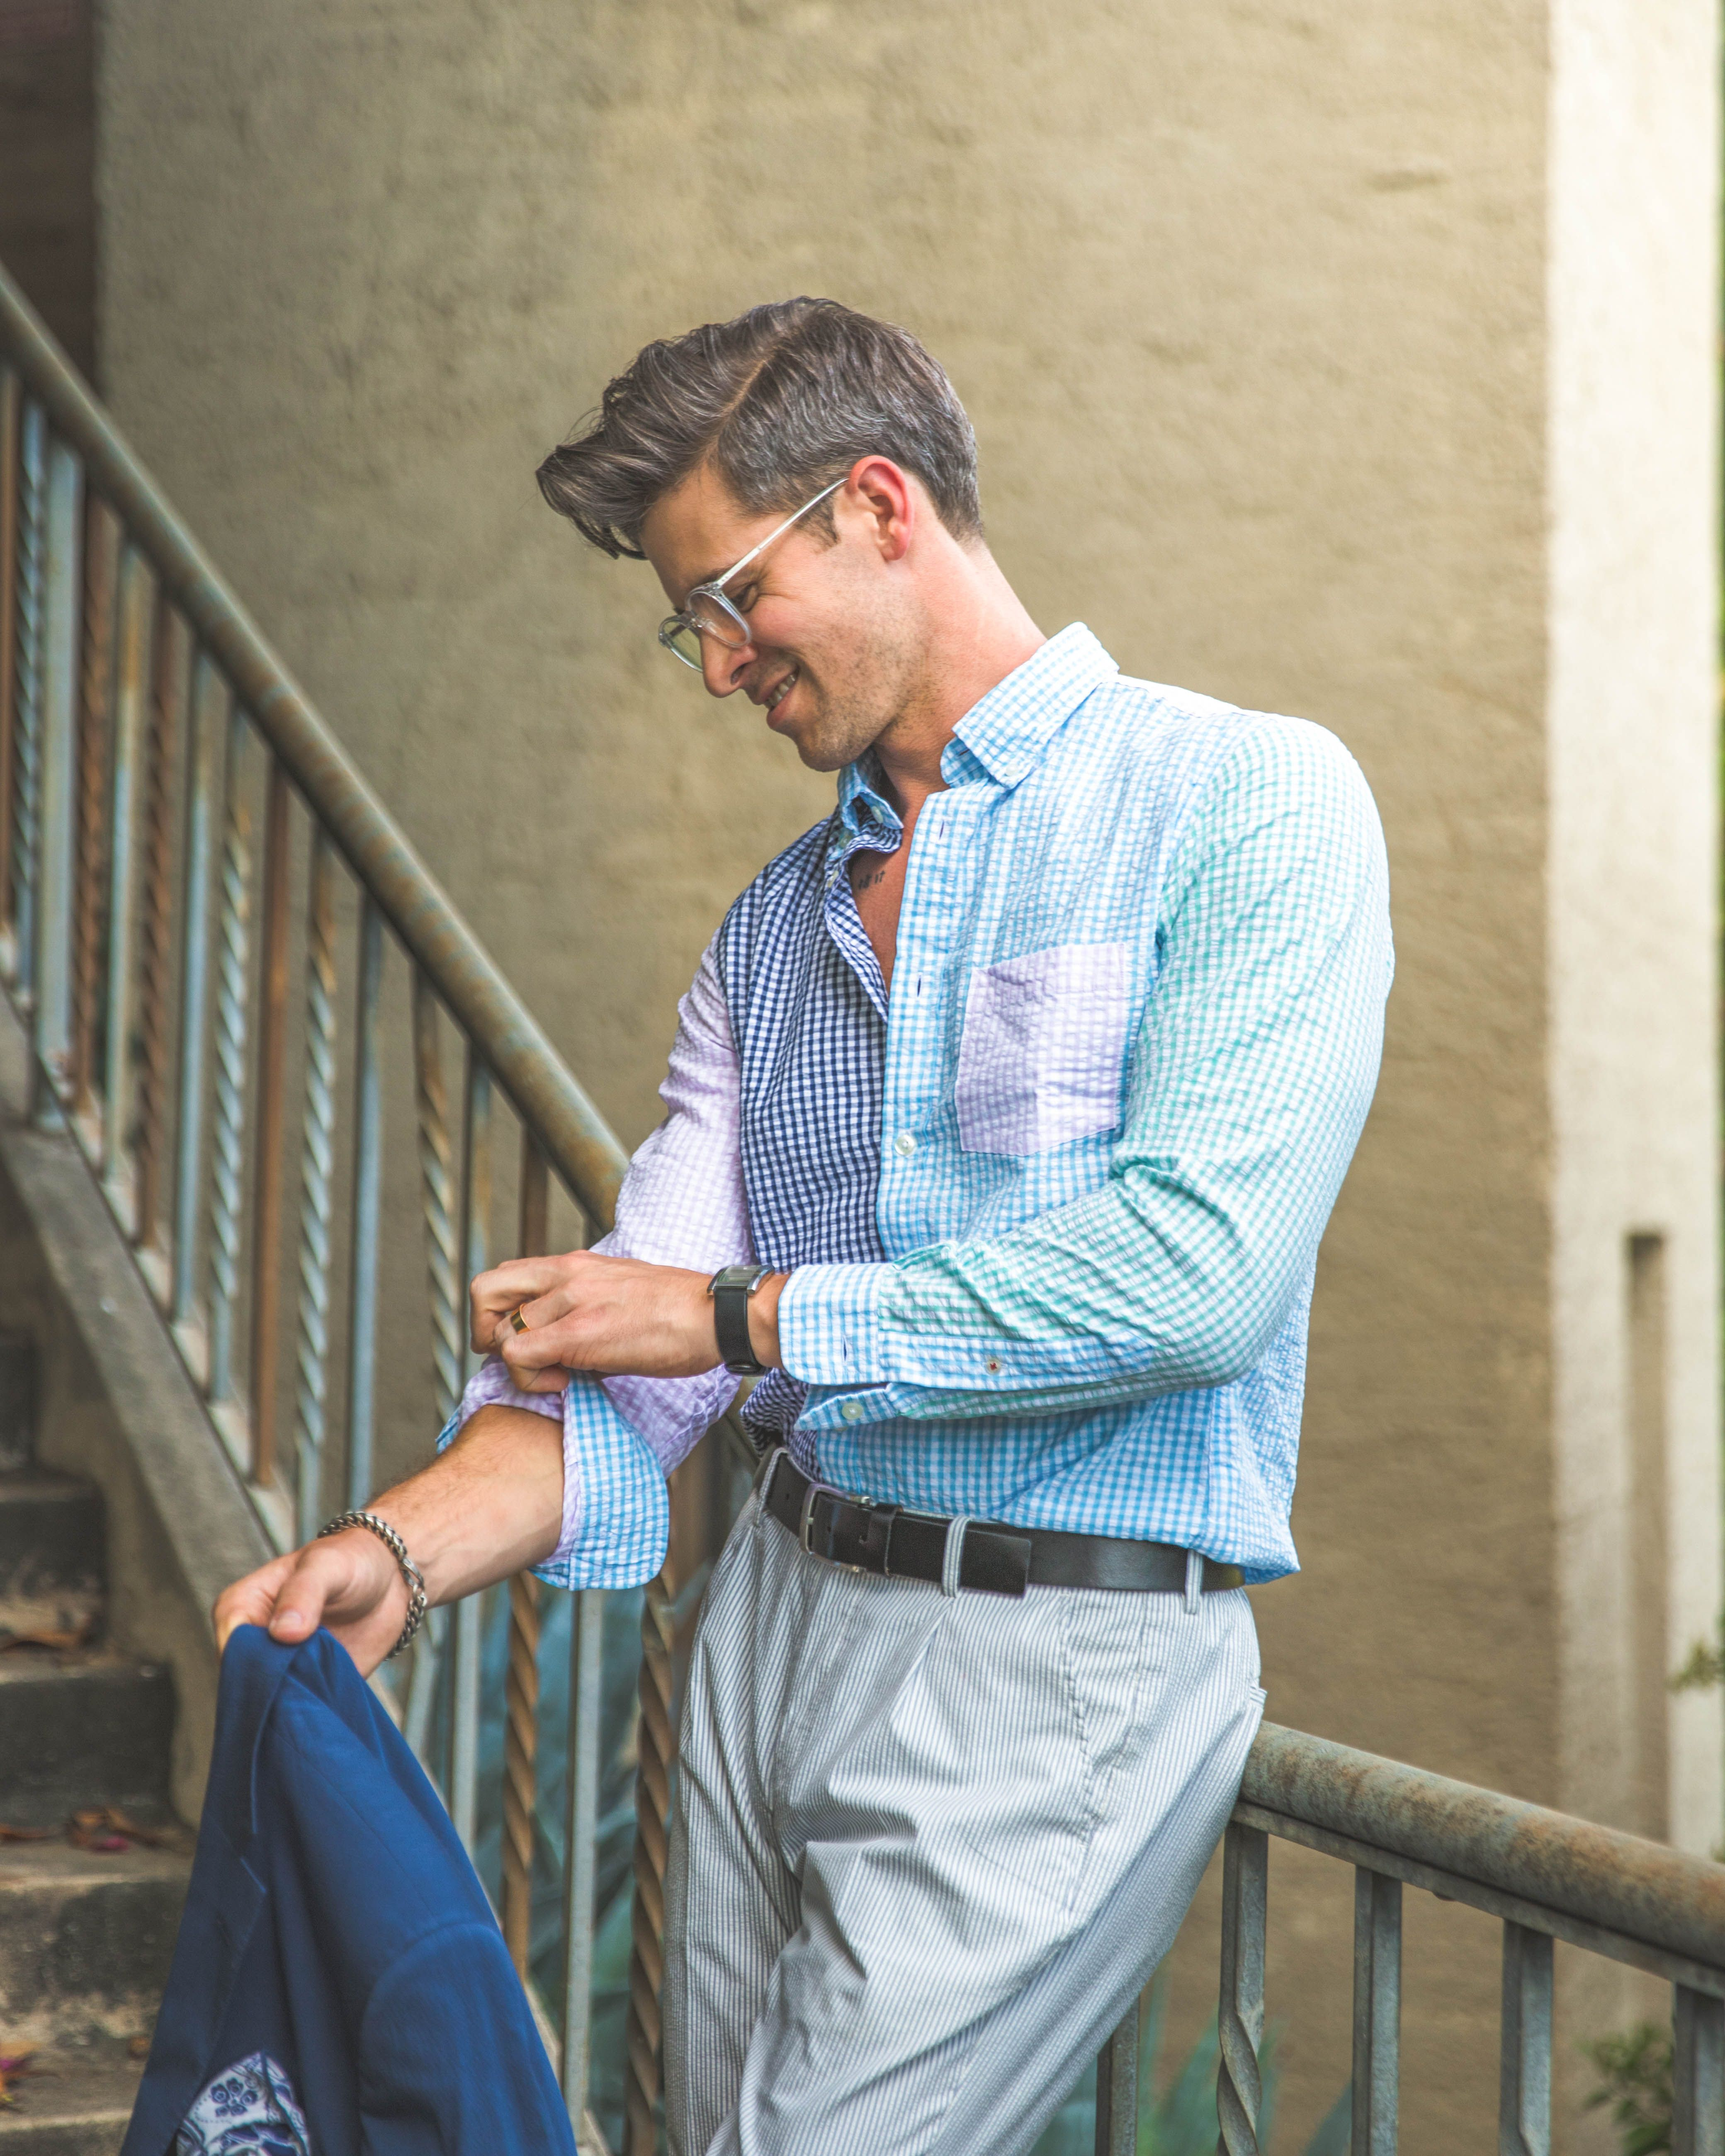 Shop Fun Shirts For Summer At Brooks Brothers Preppy Mens Fashion Preppy Men Preppy Lifestyle [ 5200 x 4160 Pixel ]